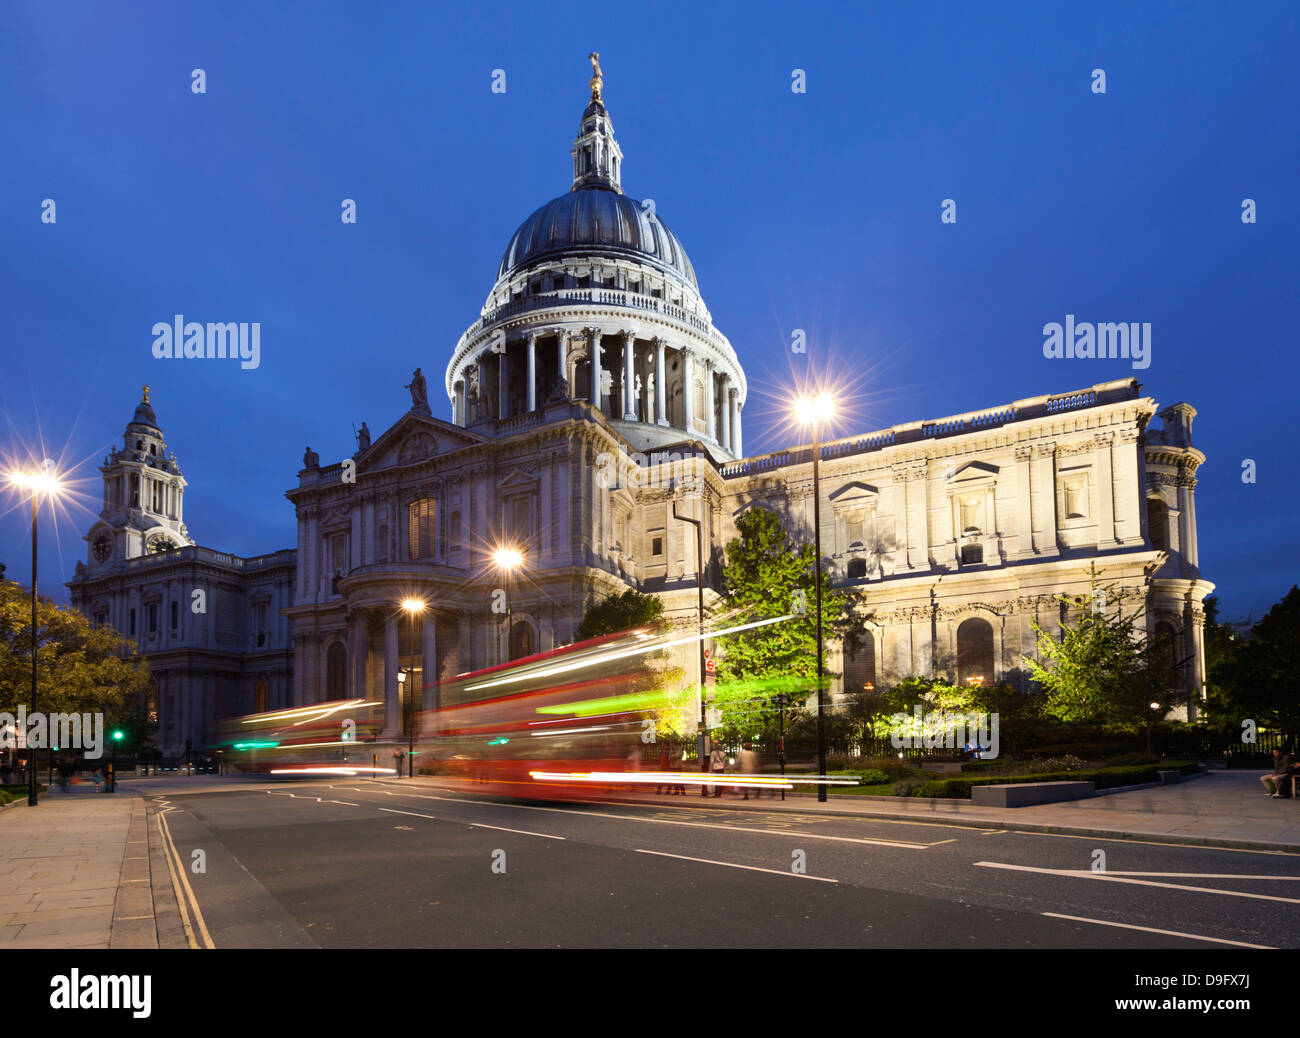 St. Paul's Cathedral at night, London, England, UK - Stock Image